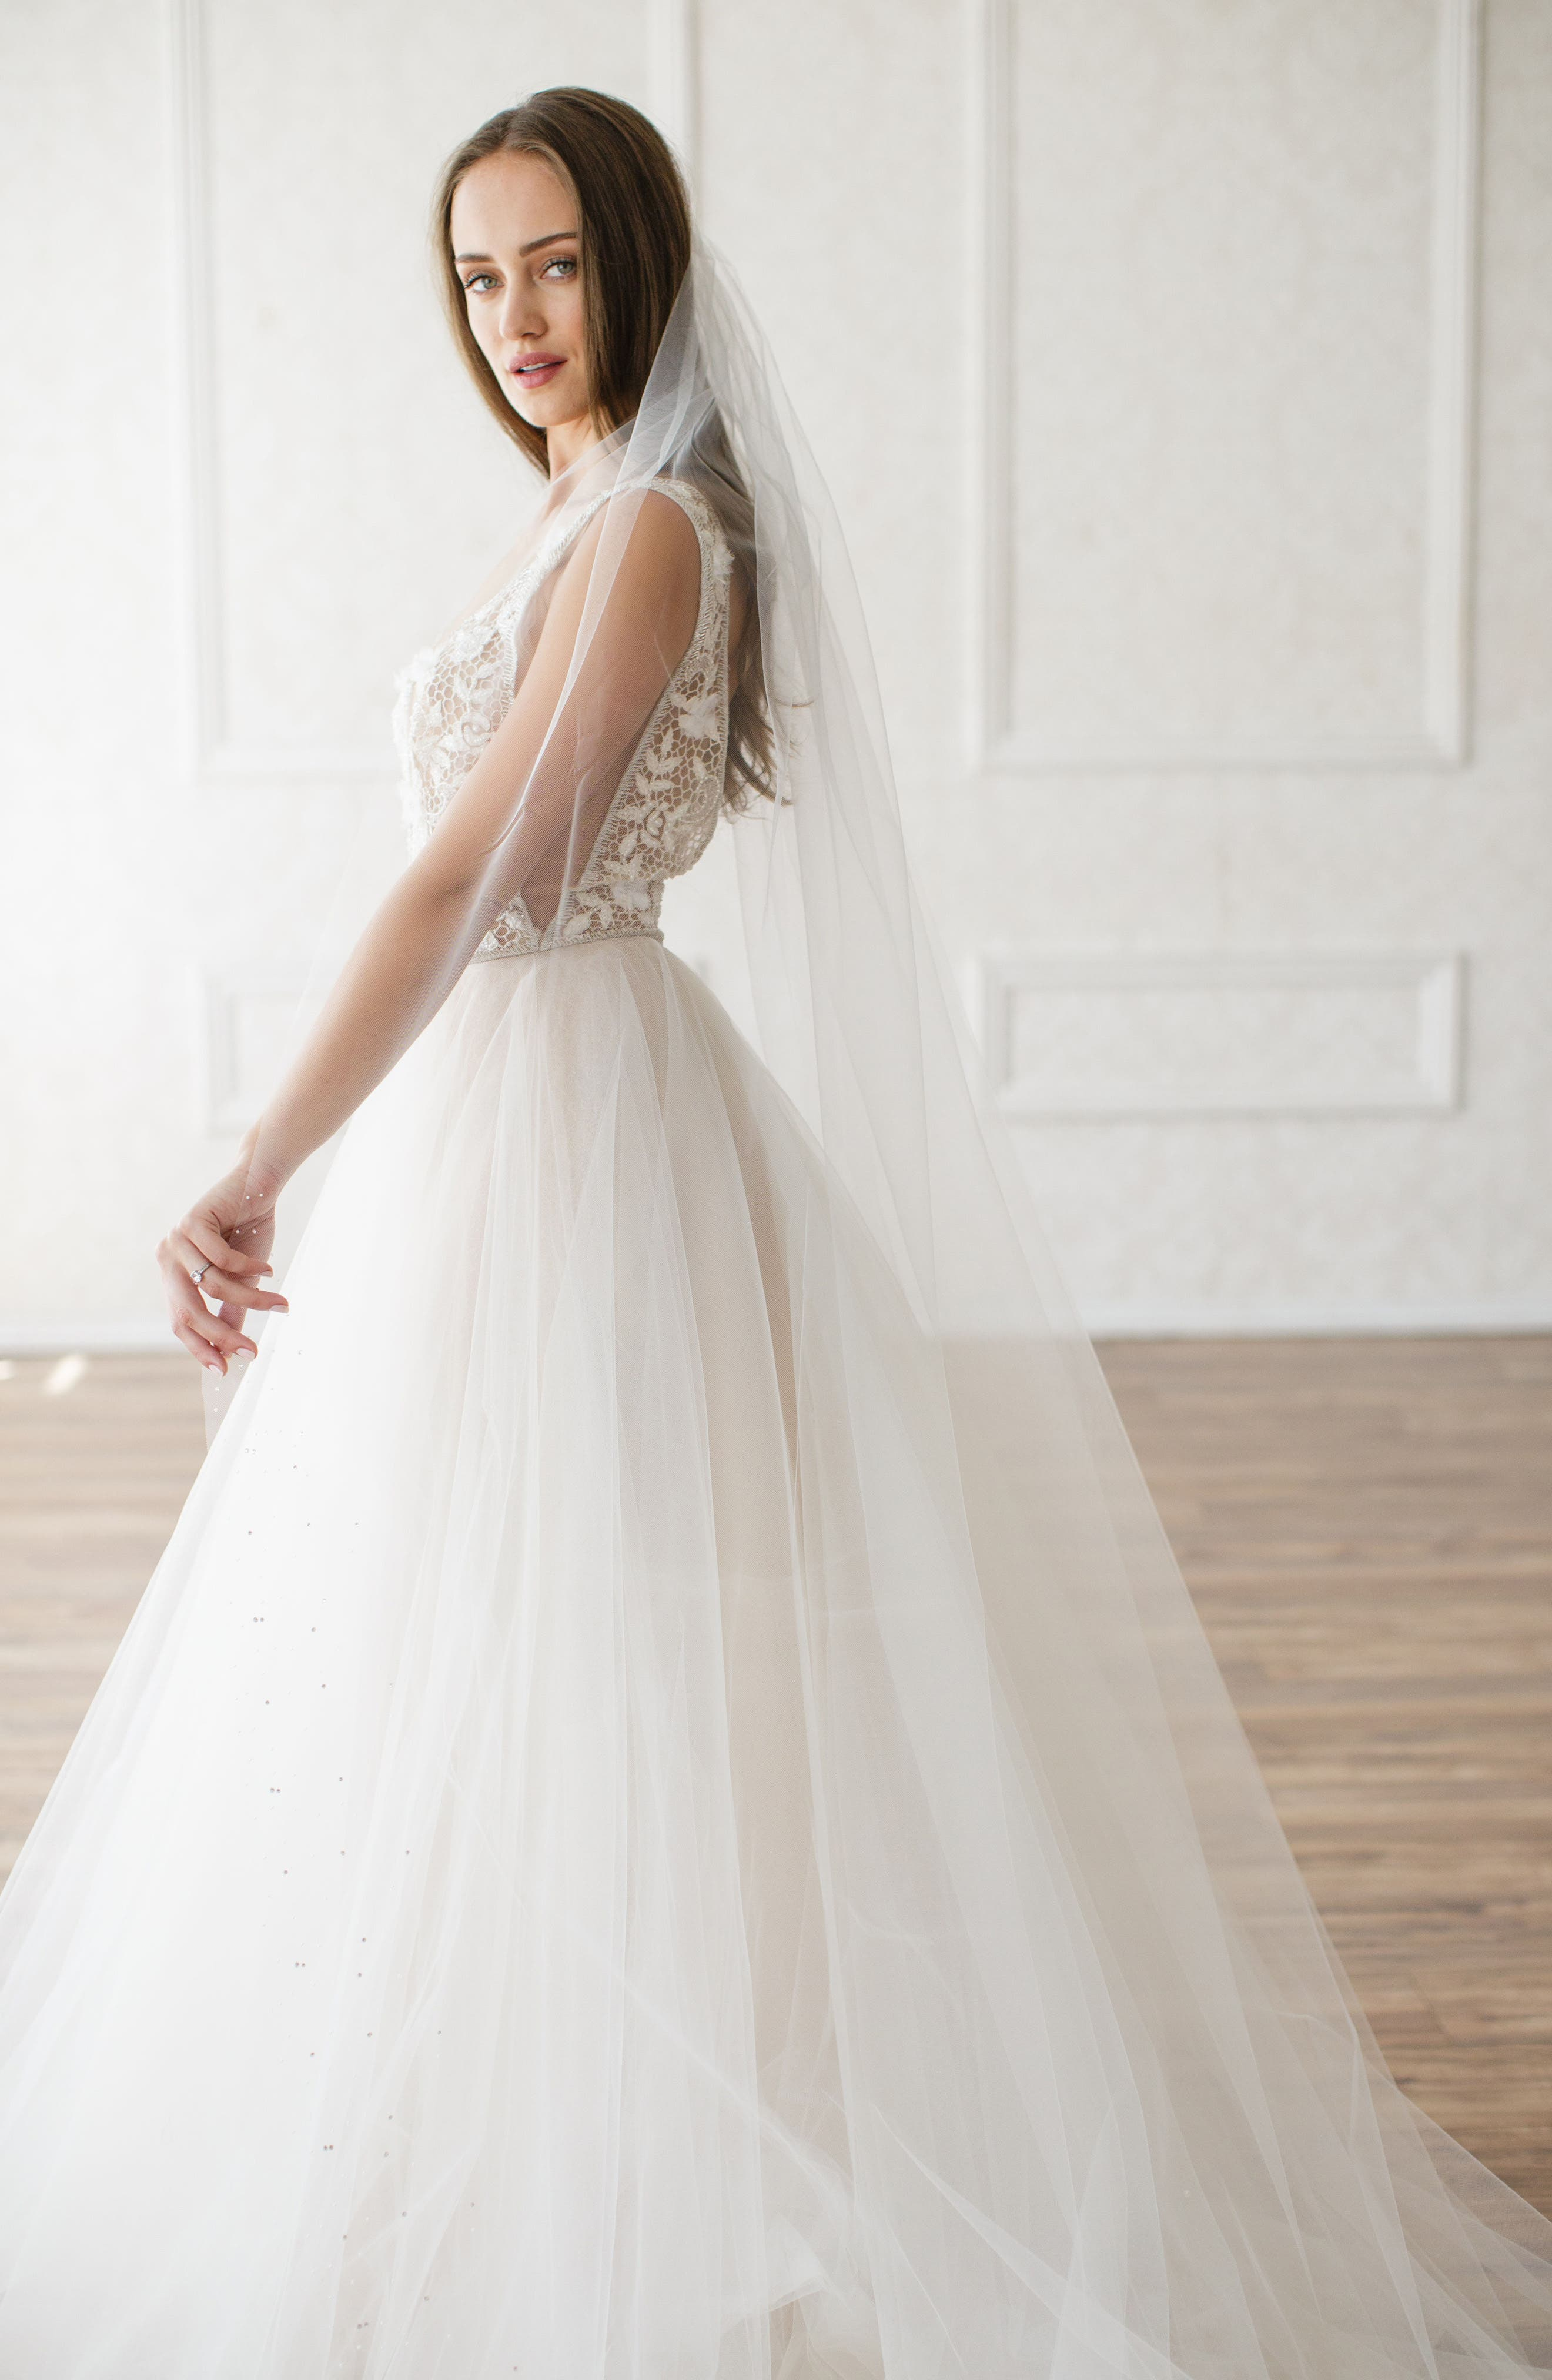 Alternate Image 1 Selected - Brides & Hairpins 'Christina' Tulle Veil